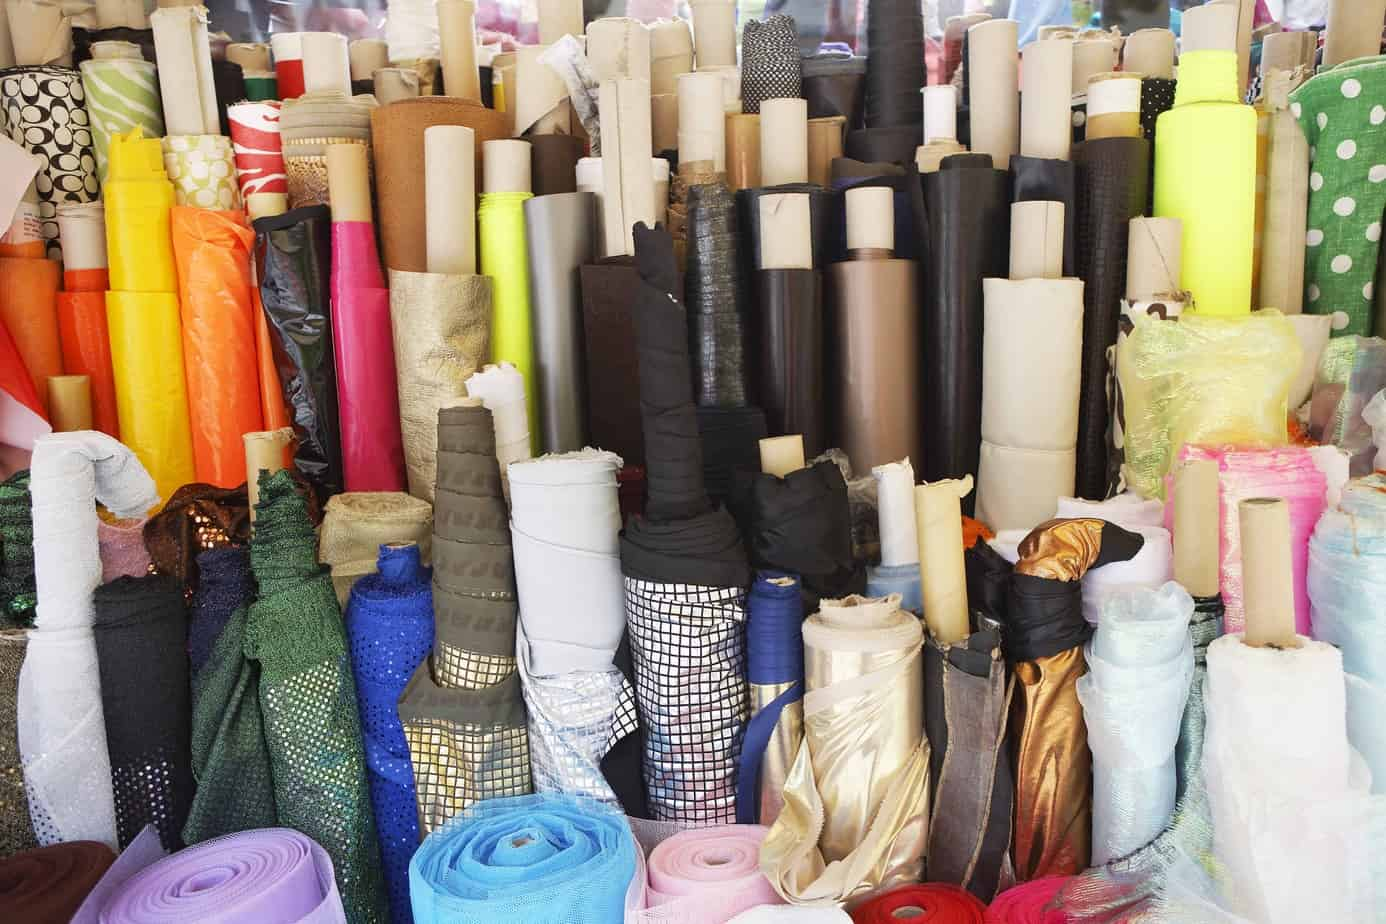 Lots of colourful bolts of fabric